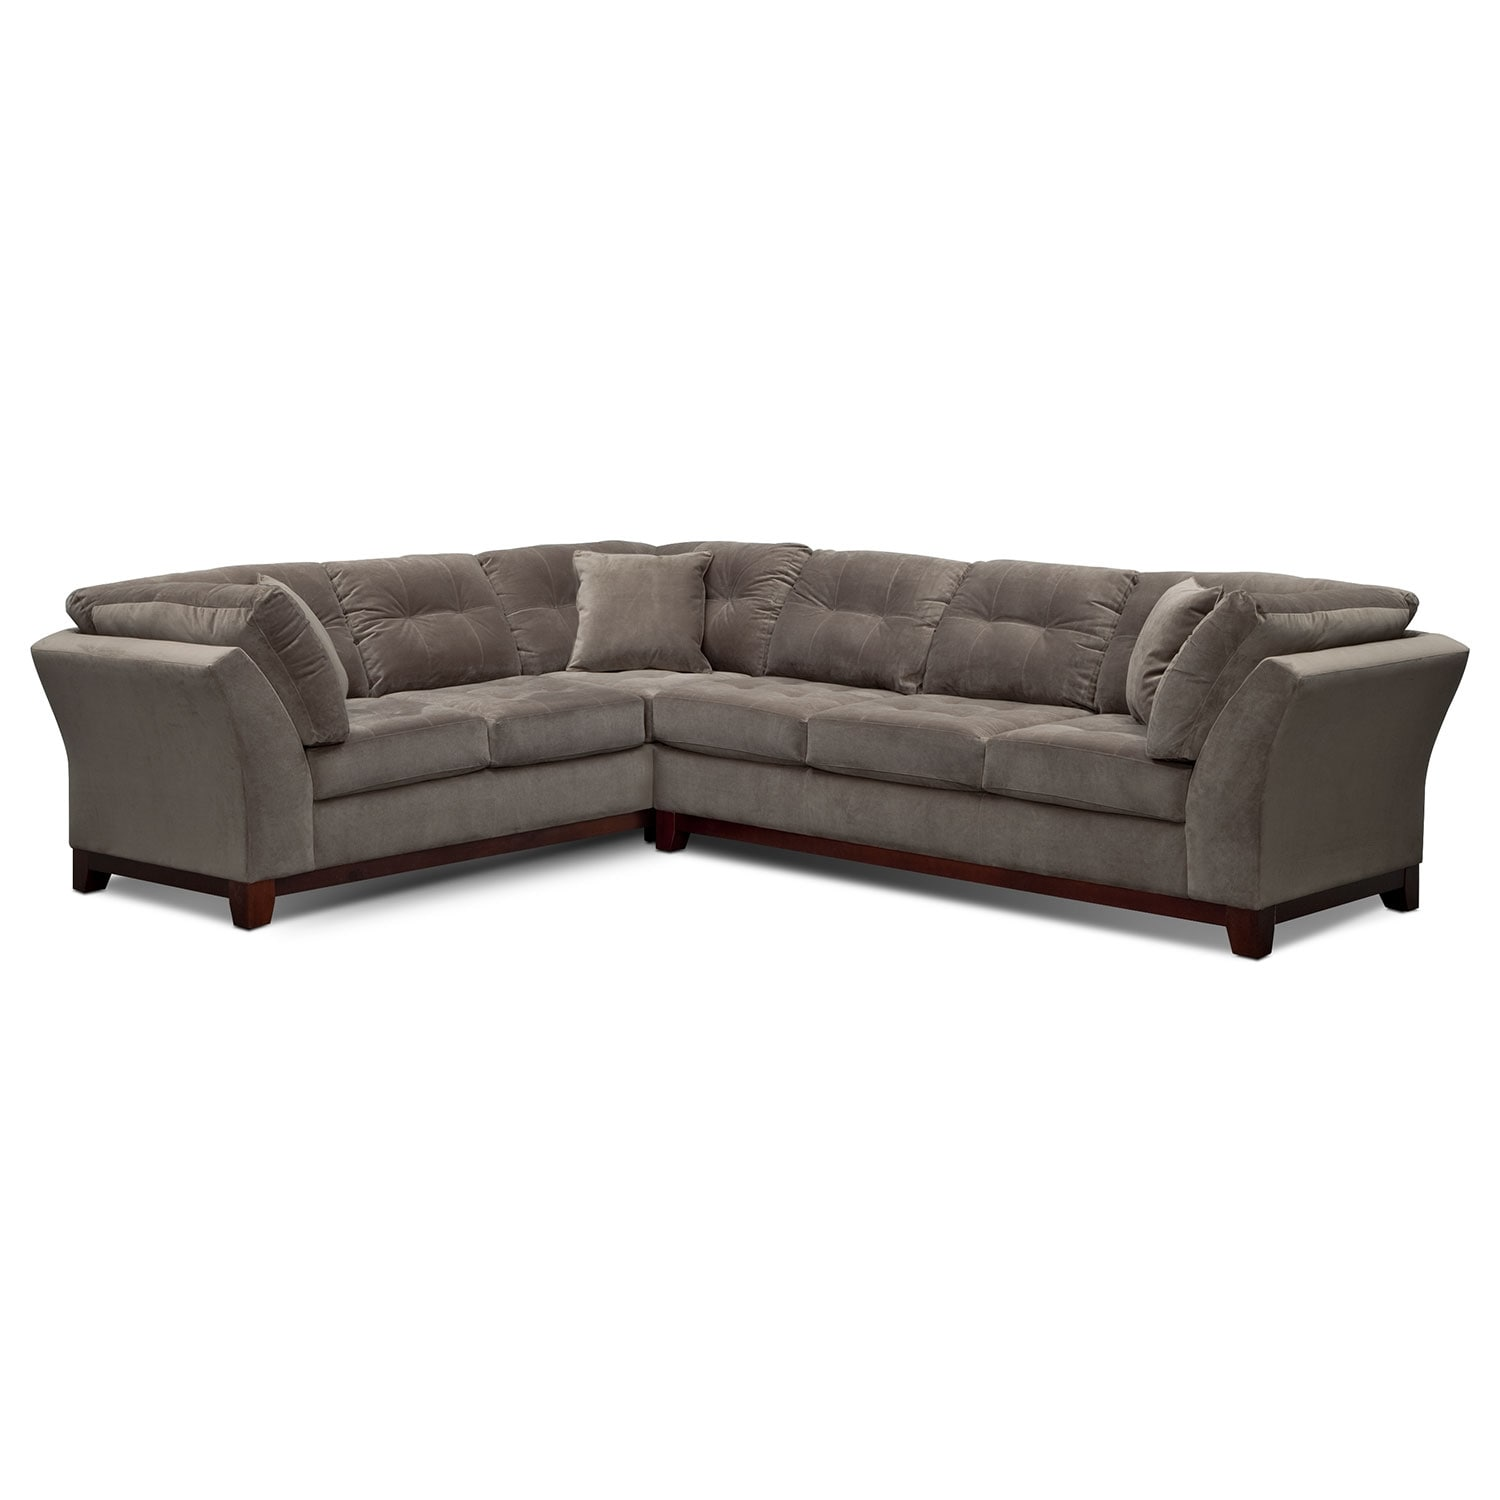 back of sofa facing fireplace e cia sebring 2 piece sectional with right gray